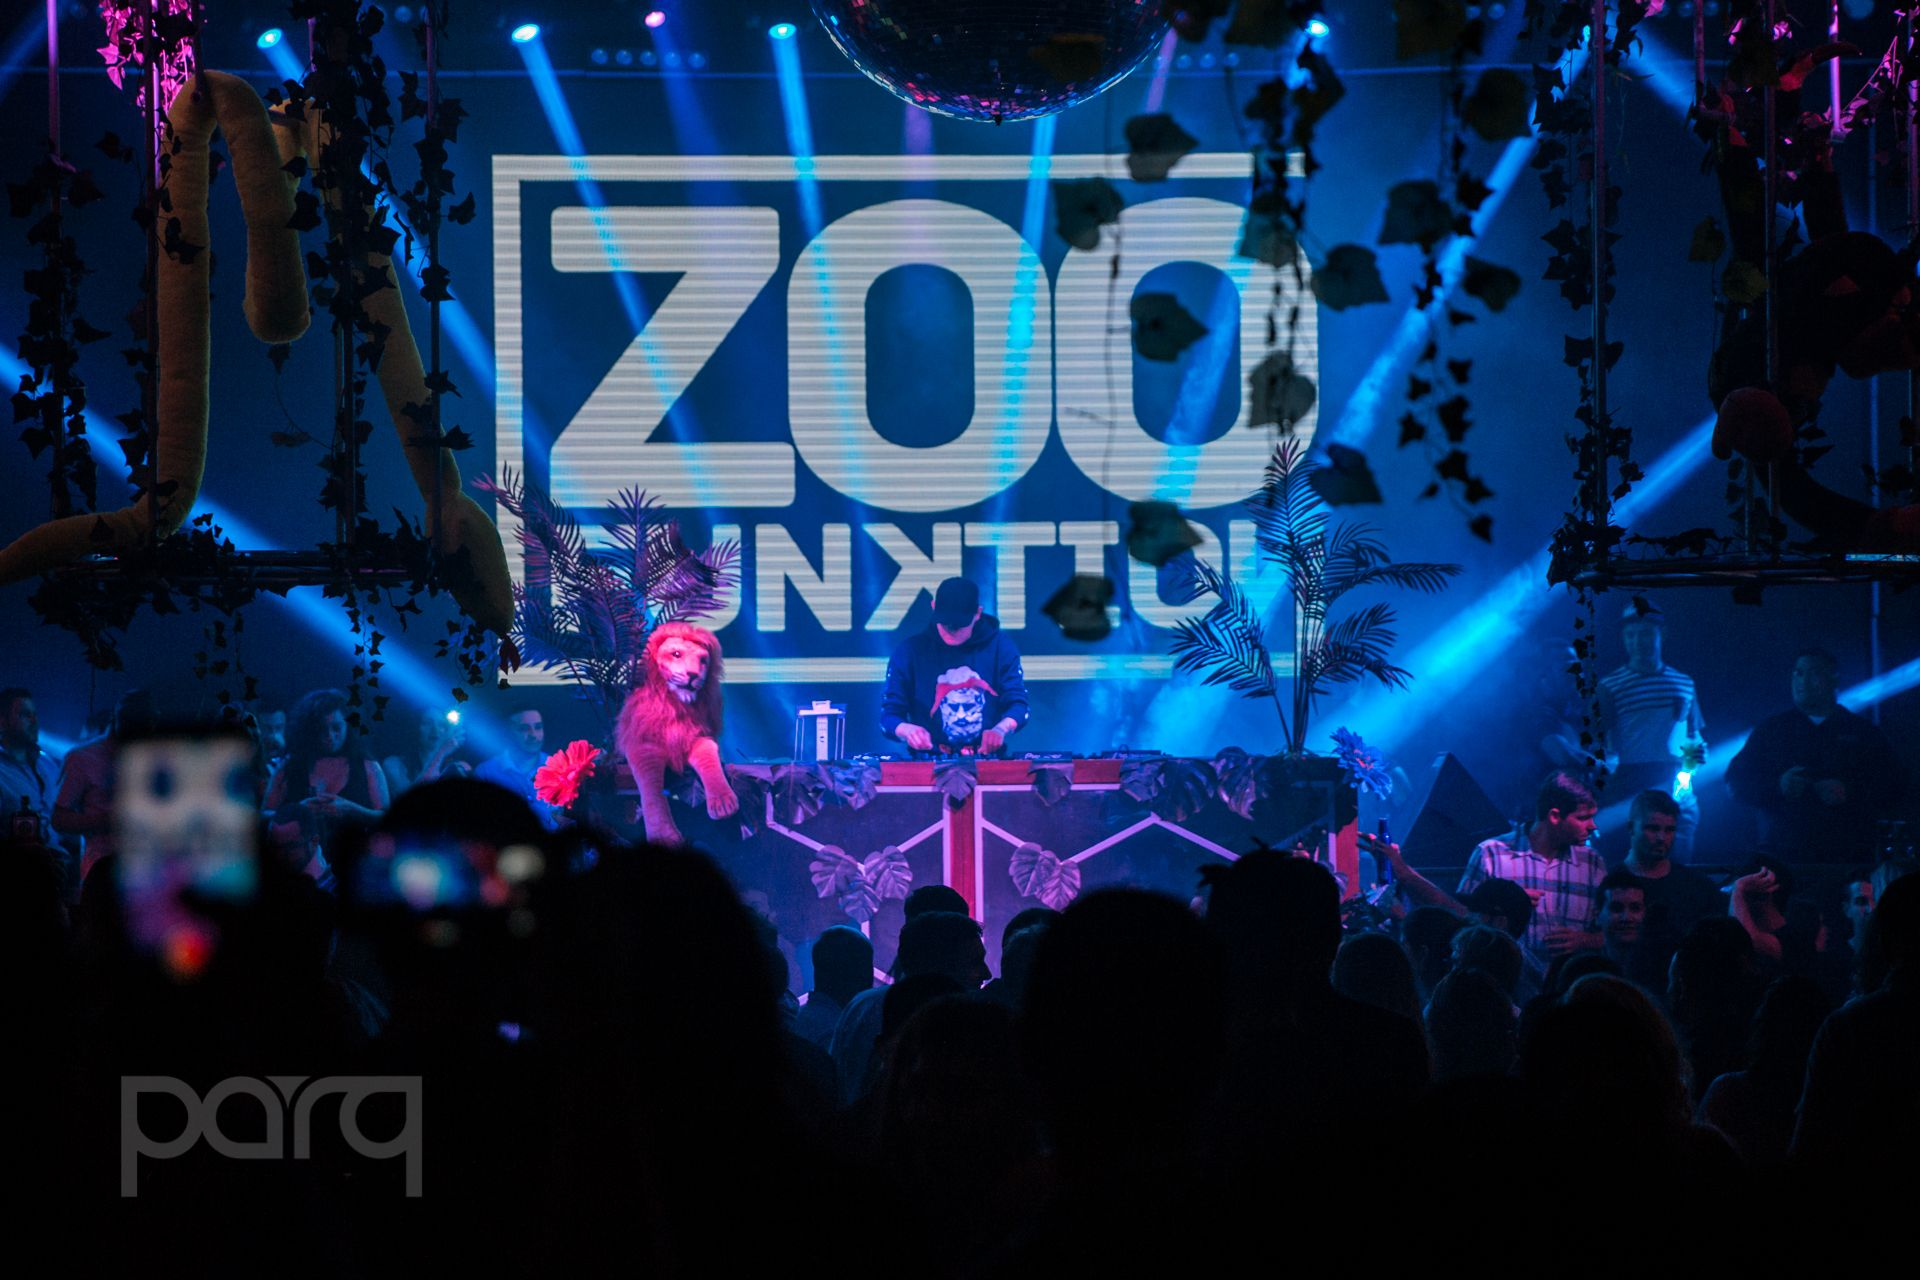 06.24.17 Zoo Funktion-1.jpg